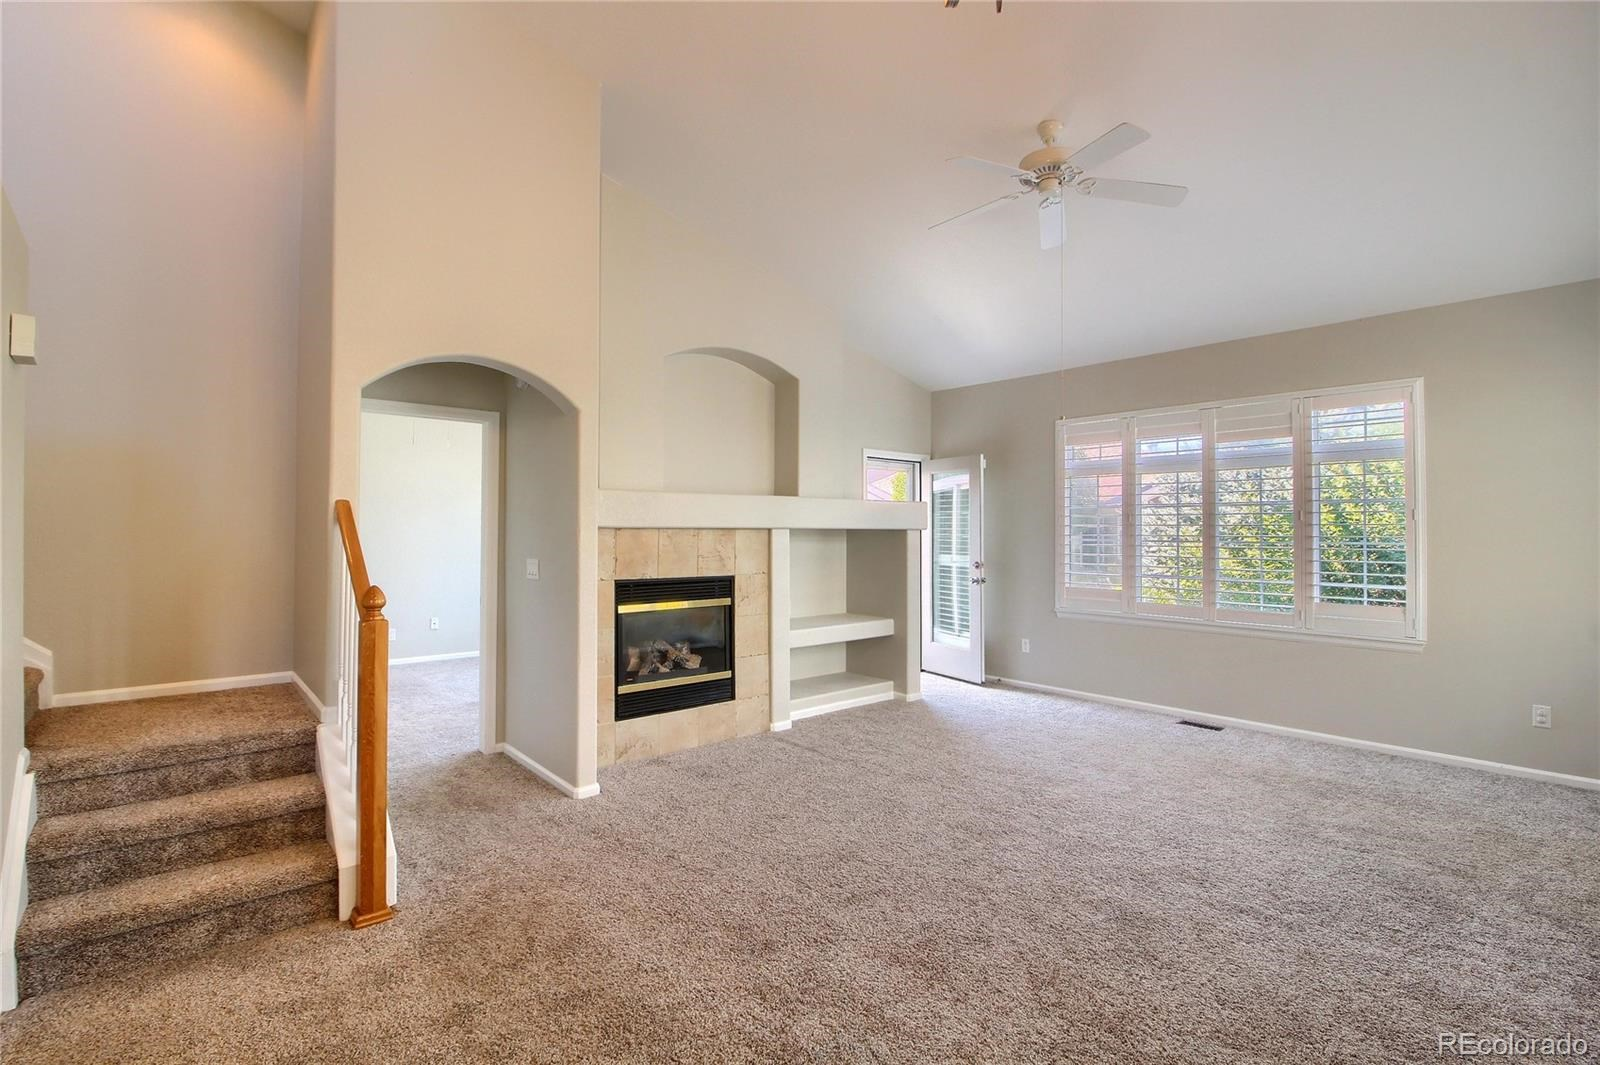 MLS# 8597792 - 4 - 13787 Stone Circle #101, Broomfield, CO 80023